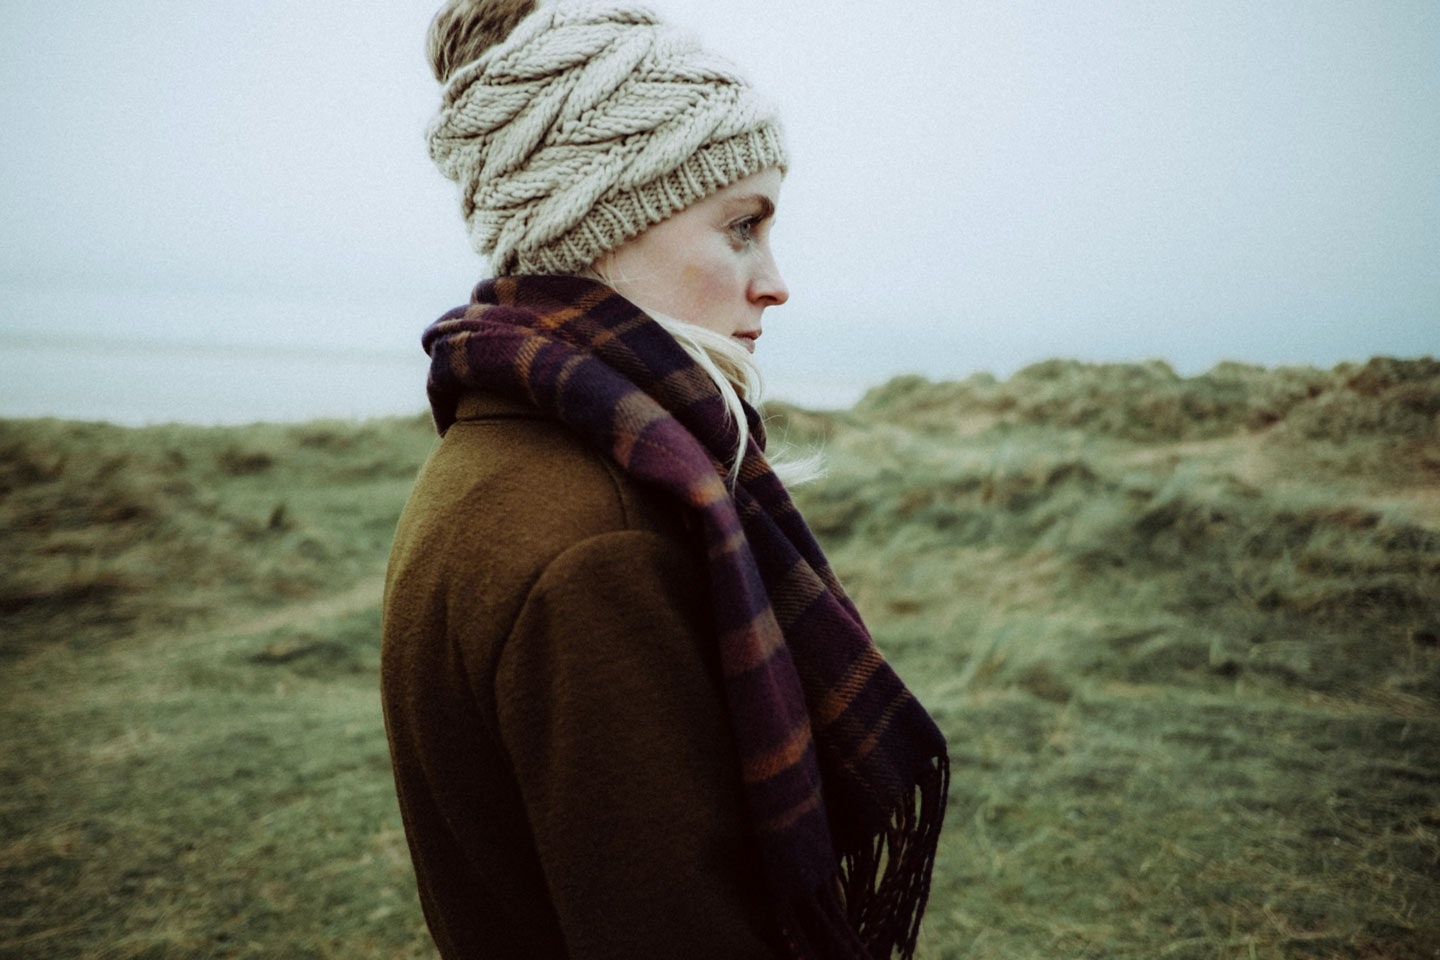 woman in winter clothing standing in a grassy field